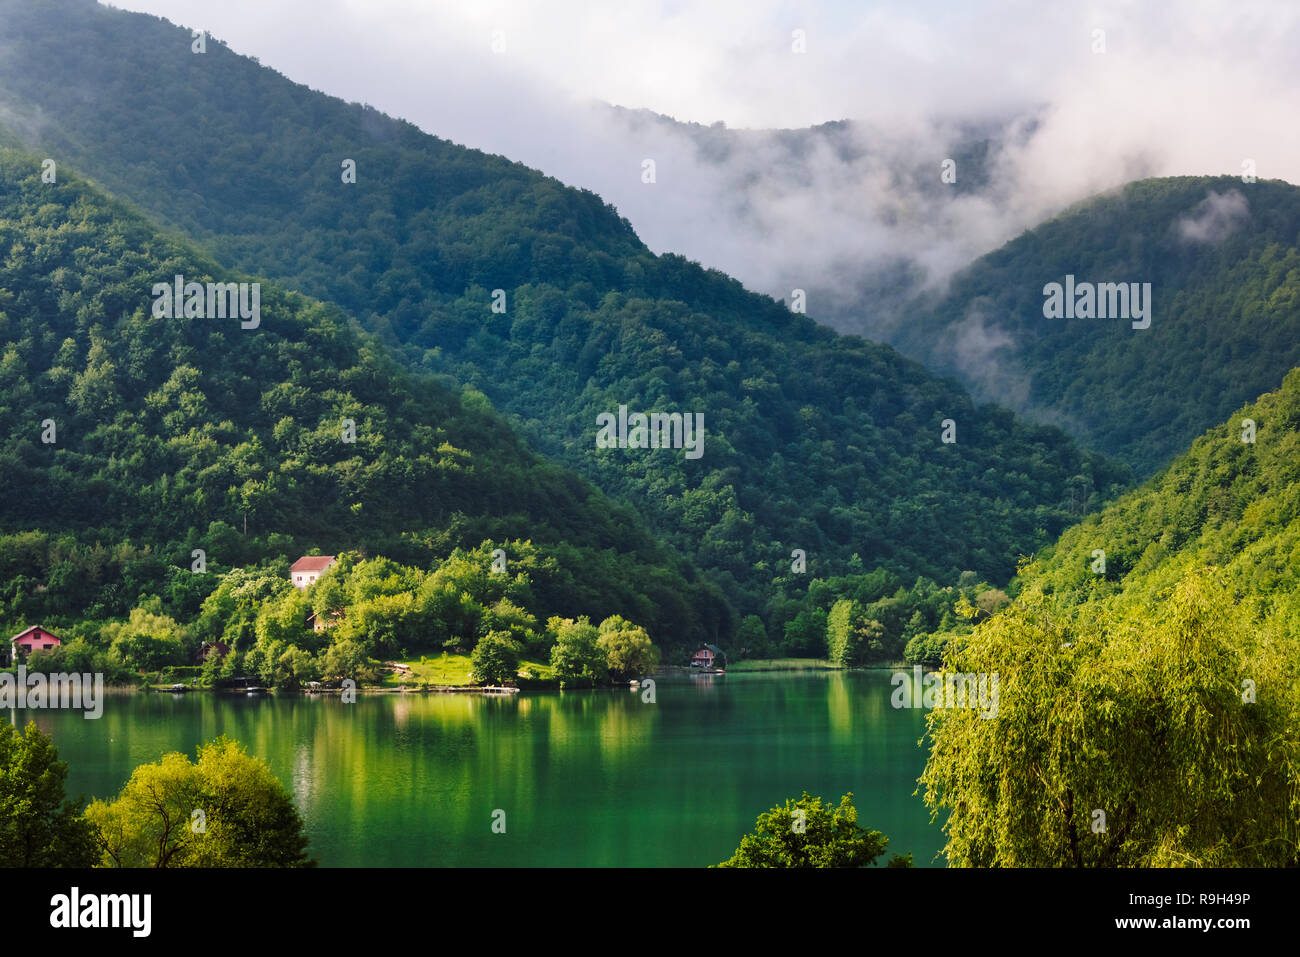 Landscape of Pilva River, Jajce, Bosnia and Herzegovina - Stock Image